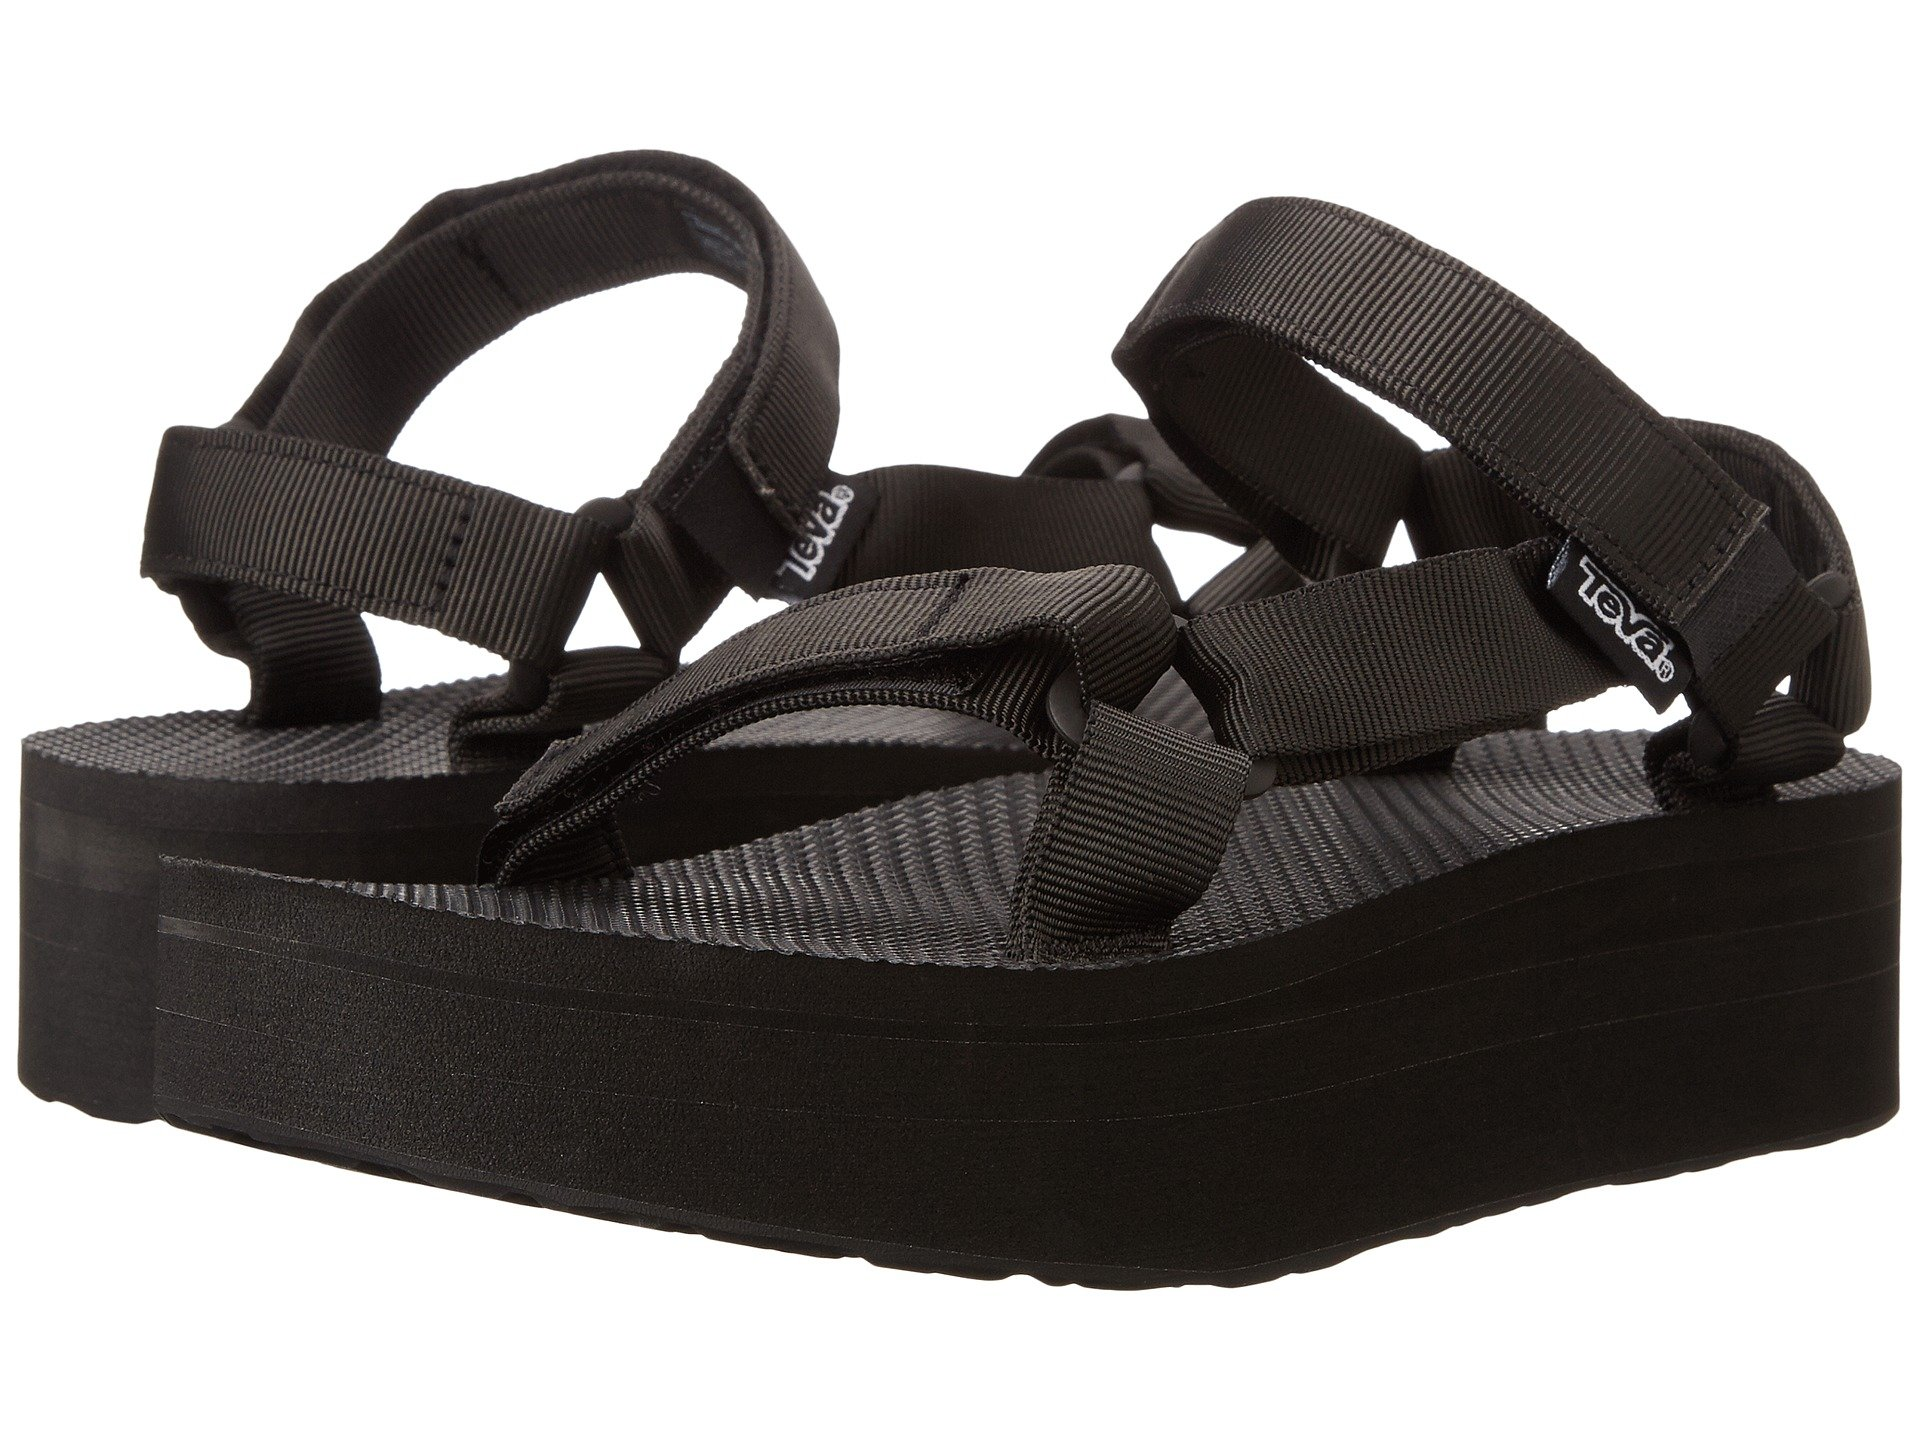 7ffdbbbafe14 Women s Teva Sandals + FREE SHIPPING